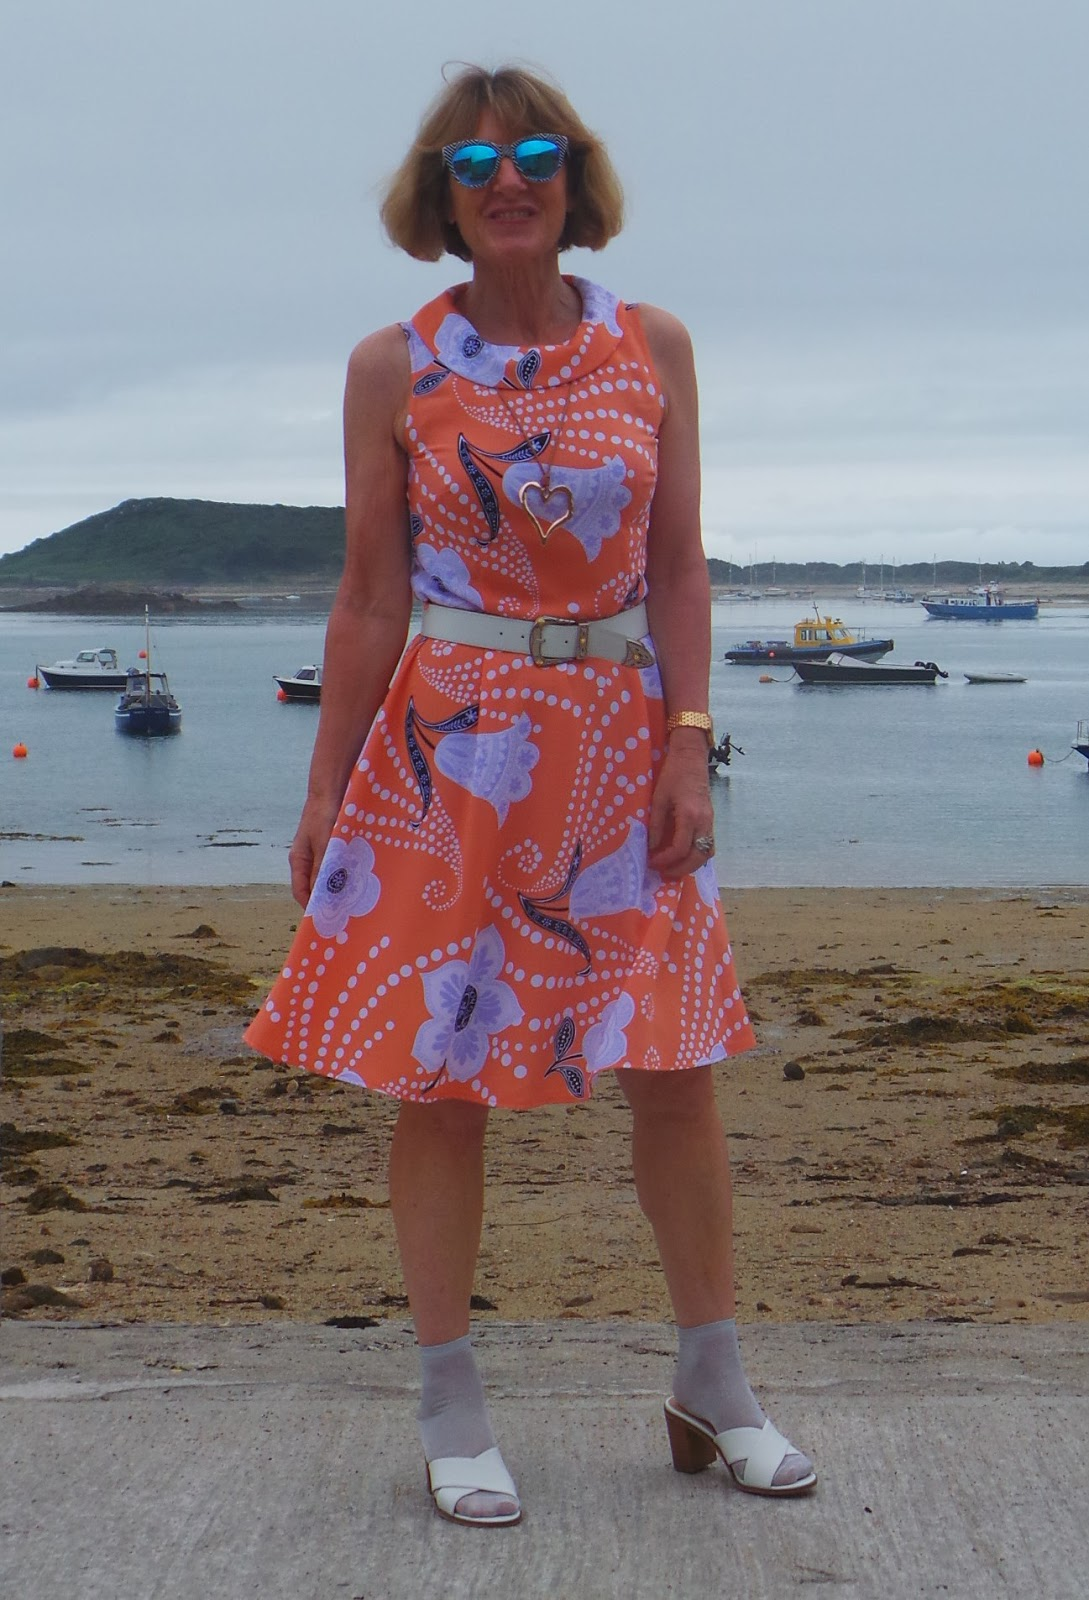 Anna Parkes from Annas Island Style in retro orange and mauve frock with ankle socks and sandals